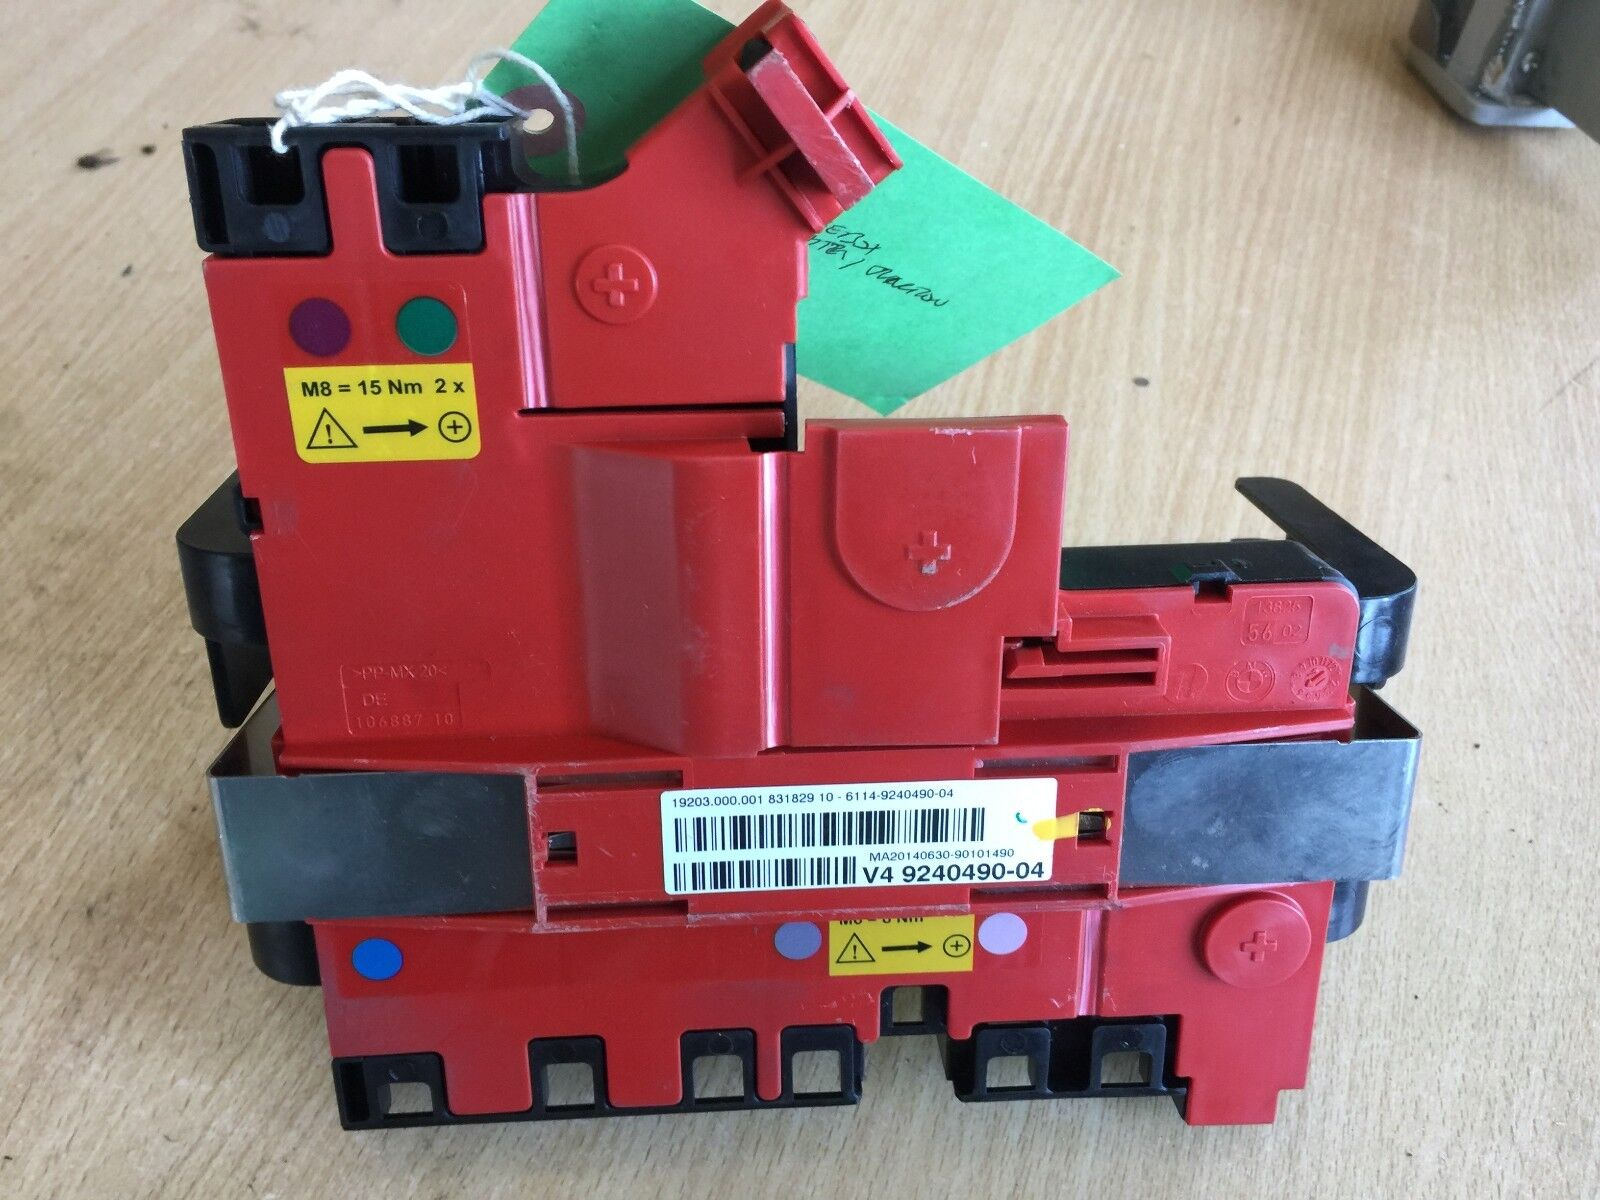 2014 Bmw 5 Series F10 Rear Battery Distribution Unit 9240490 03 M6 Fuse Box Norton Secured Powered By Verisign